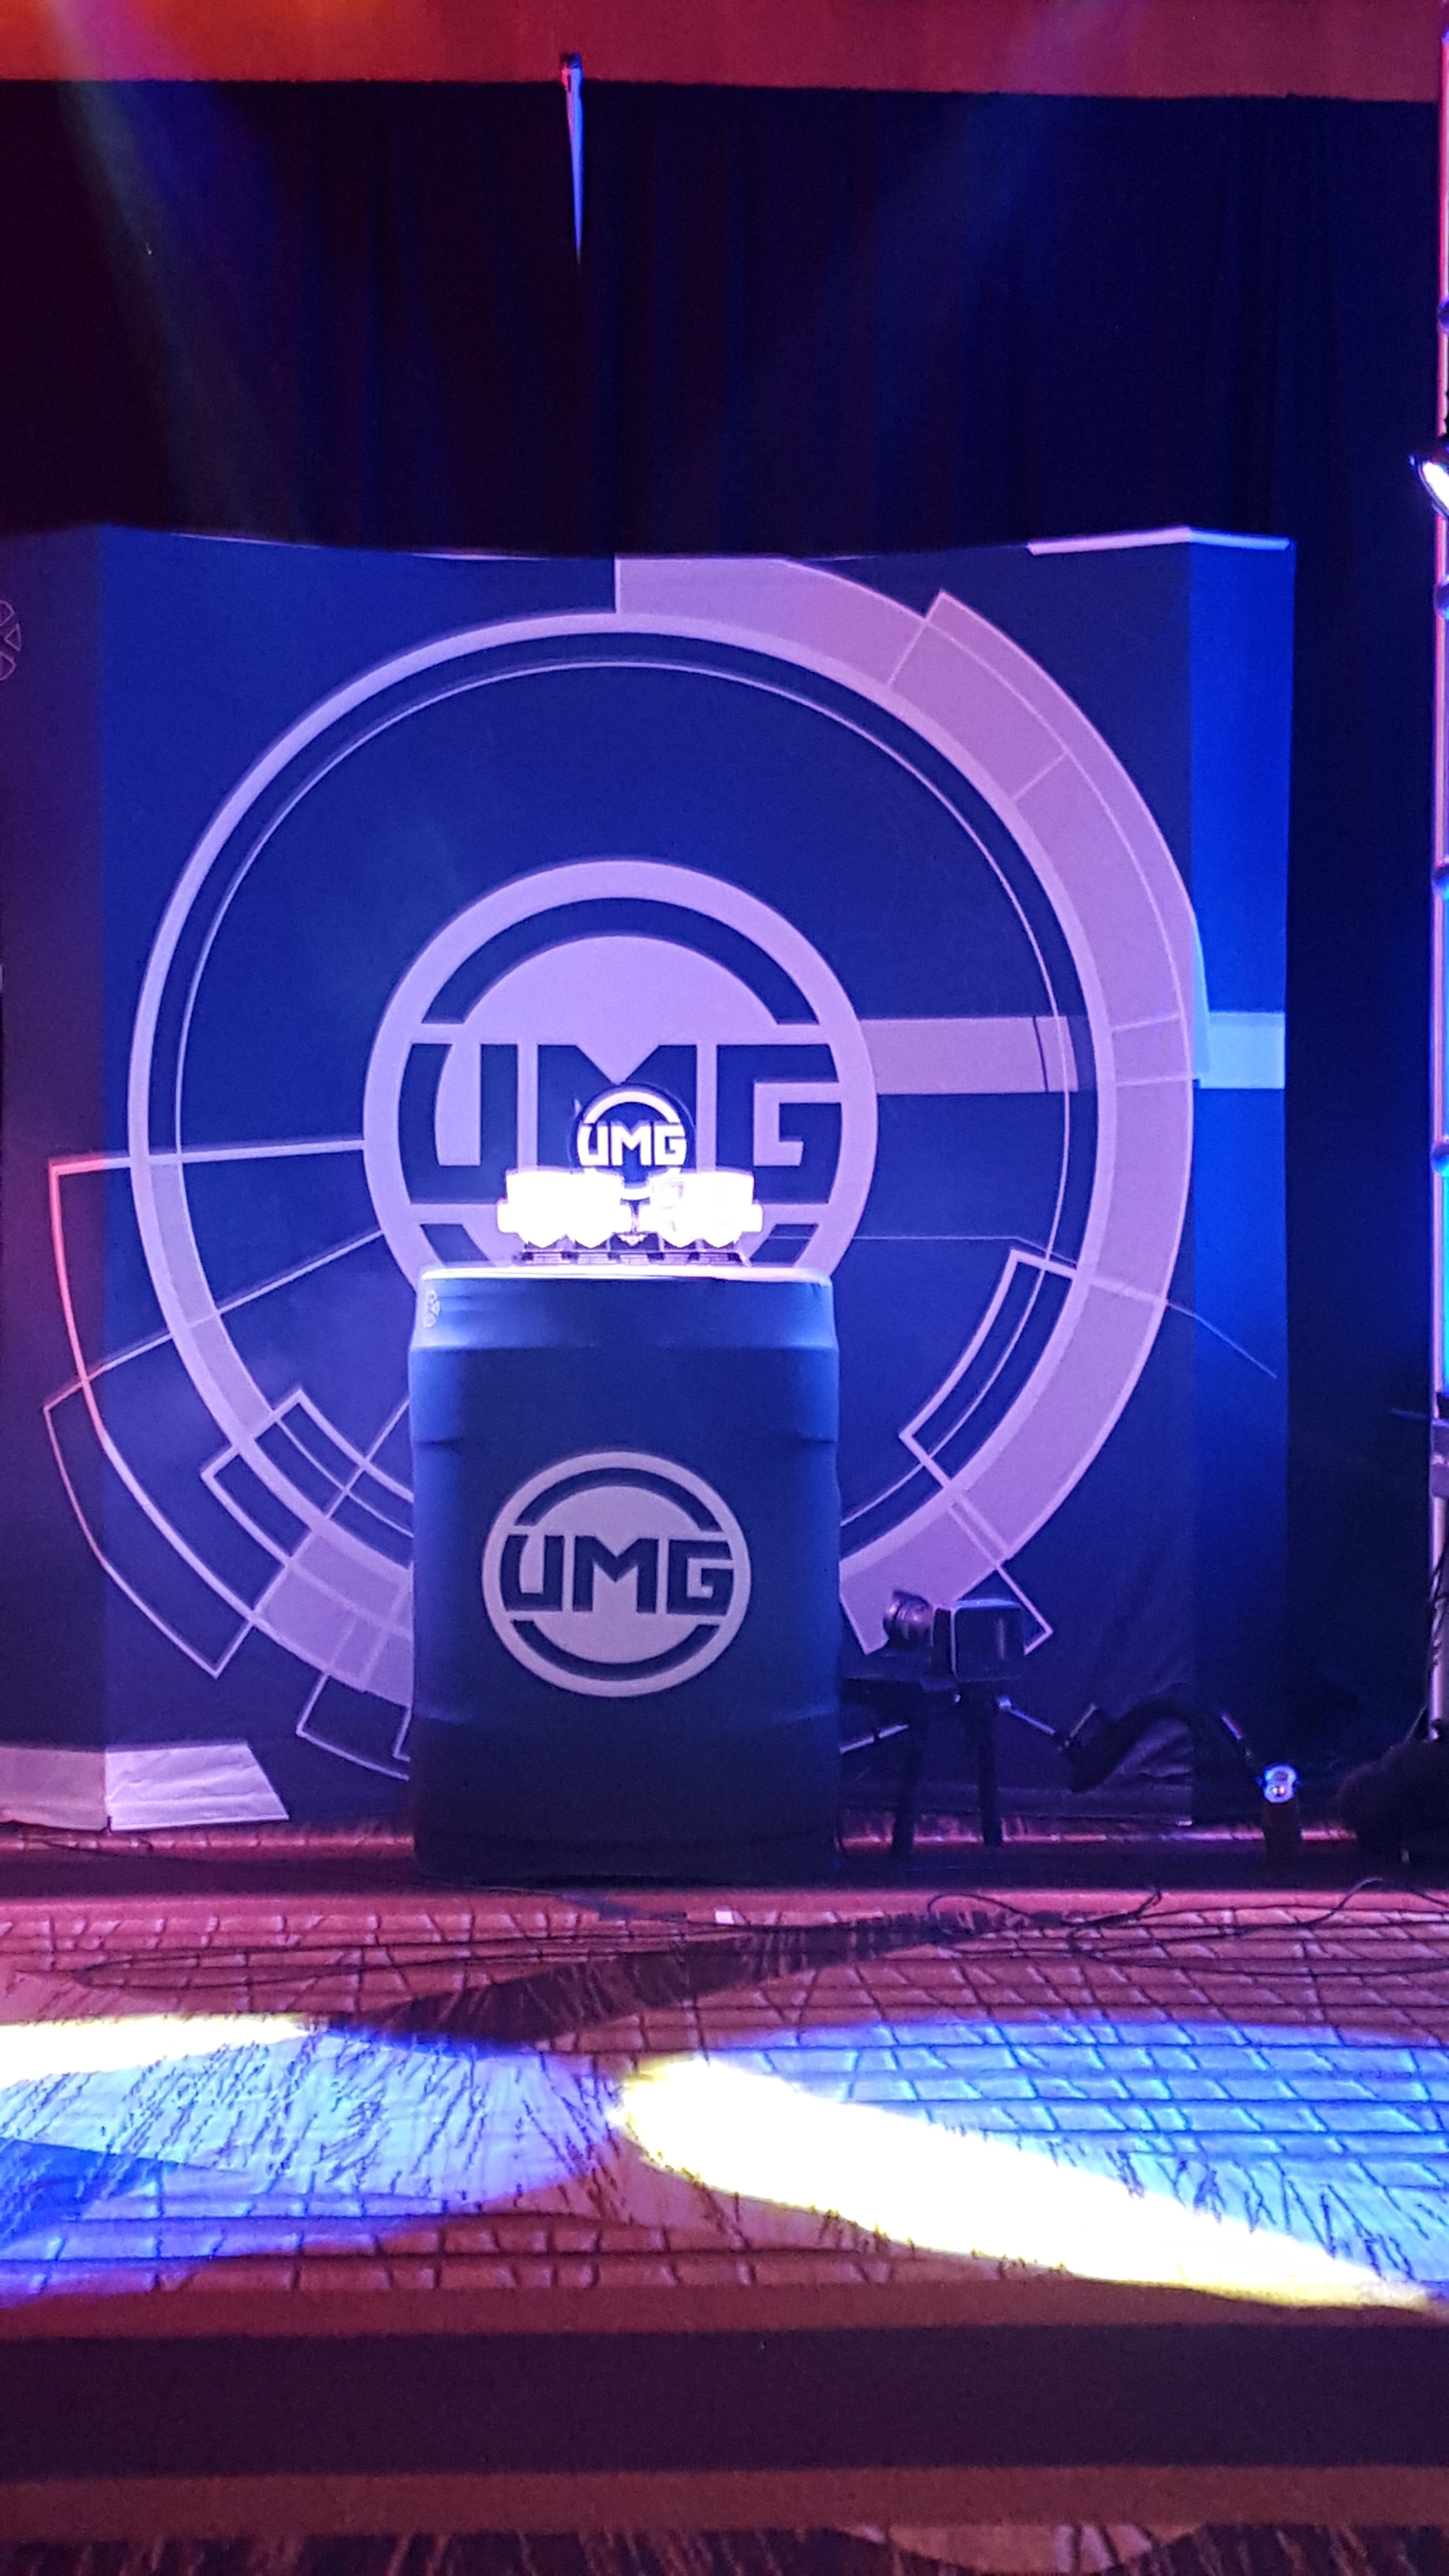 UMGDC SCUF50K: Call of Duty Advanced Warfare (CODAW) Photos & Pictures, Washington, D.C., September 5th, 2015